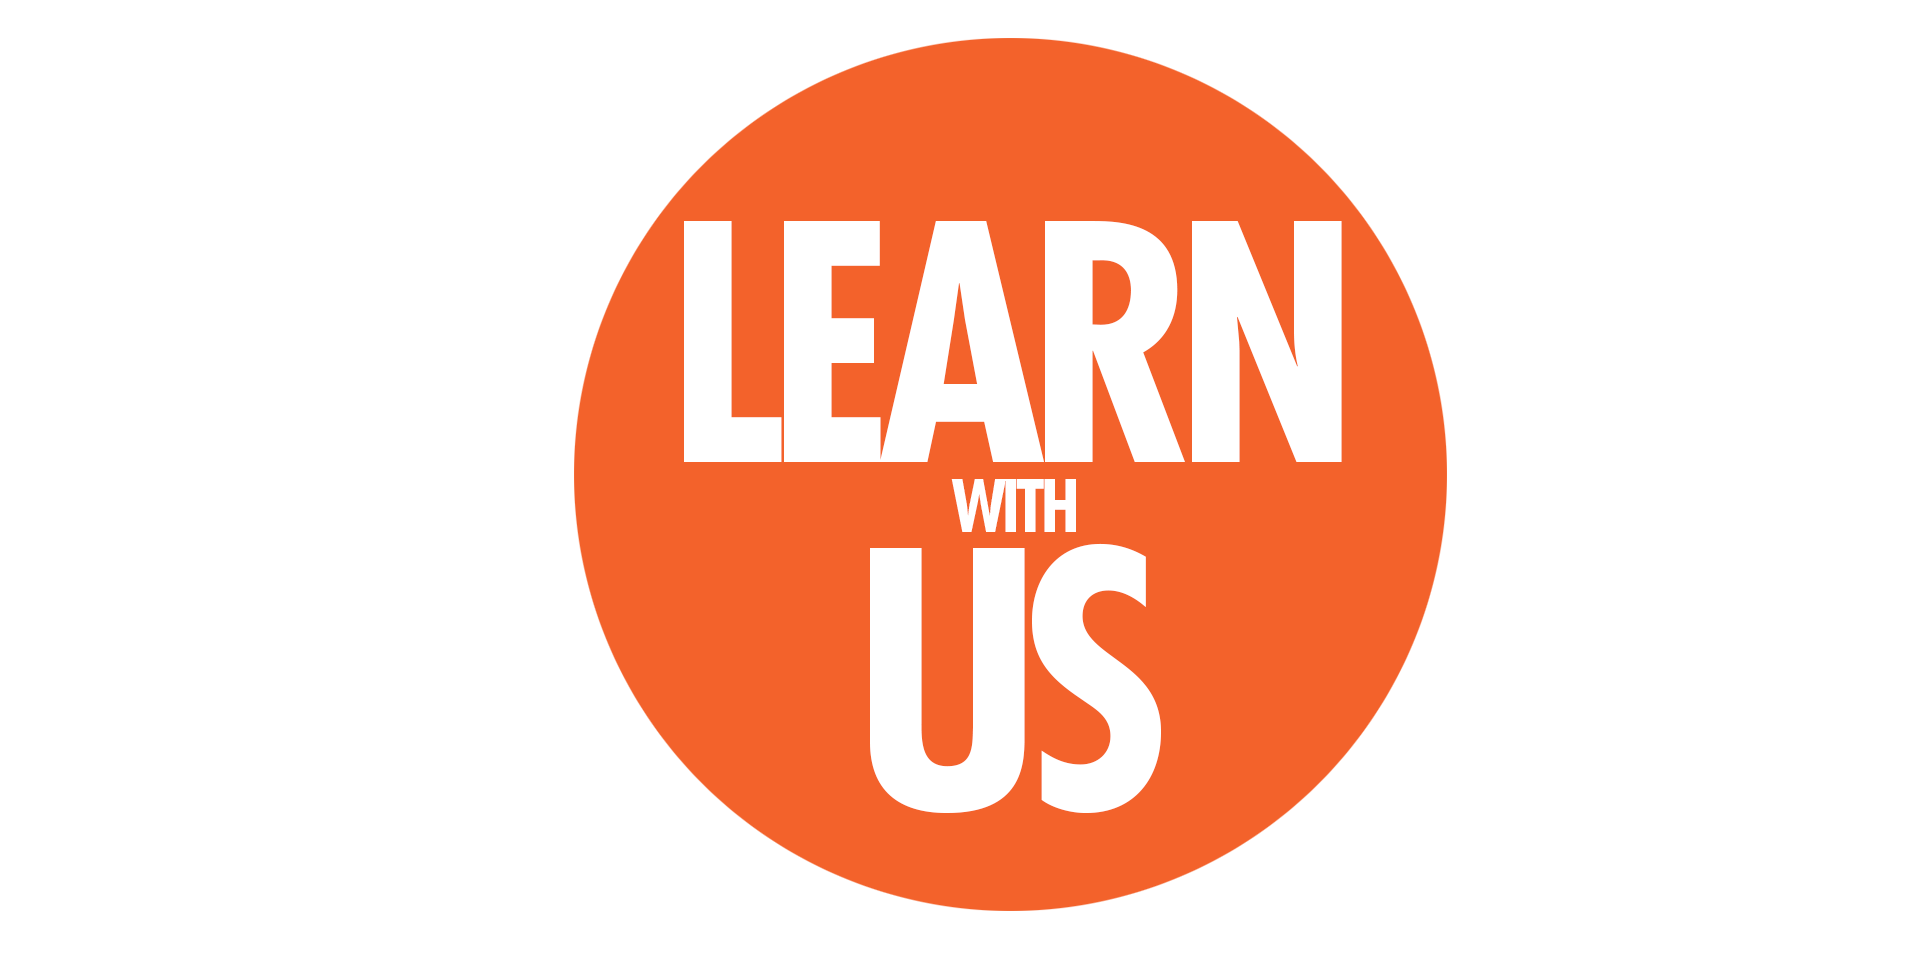 Learn-with-us-logo